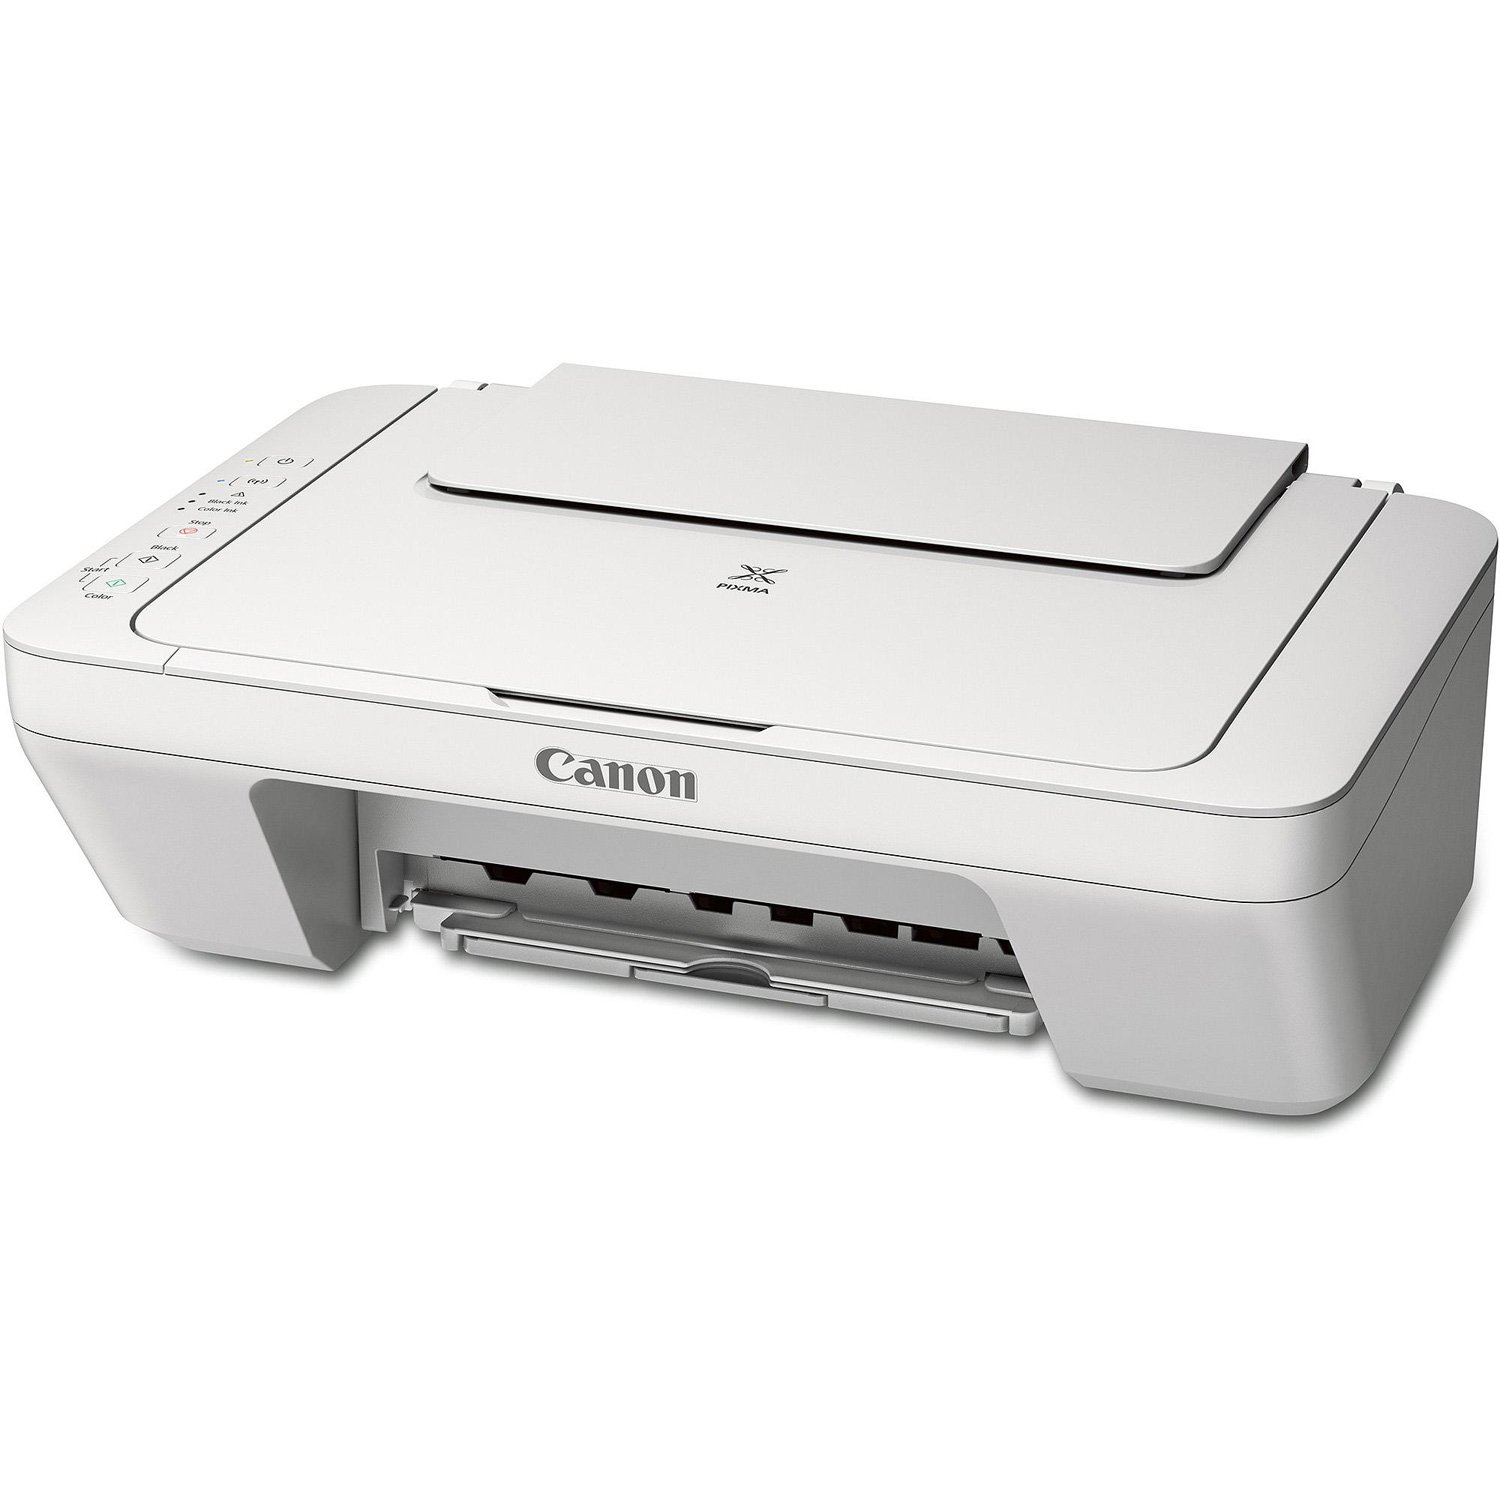 Canon PIXMA MG2920 Wireless Inkjet All-in-One Printer Best Inexpensive Inkjet Printer to Buy